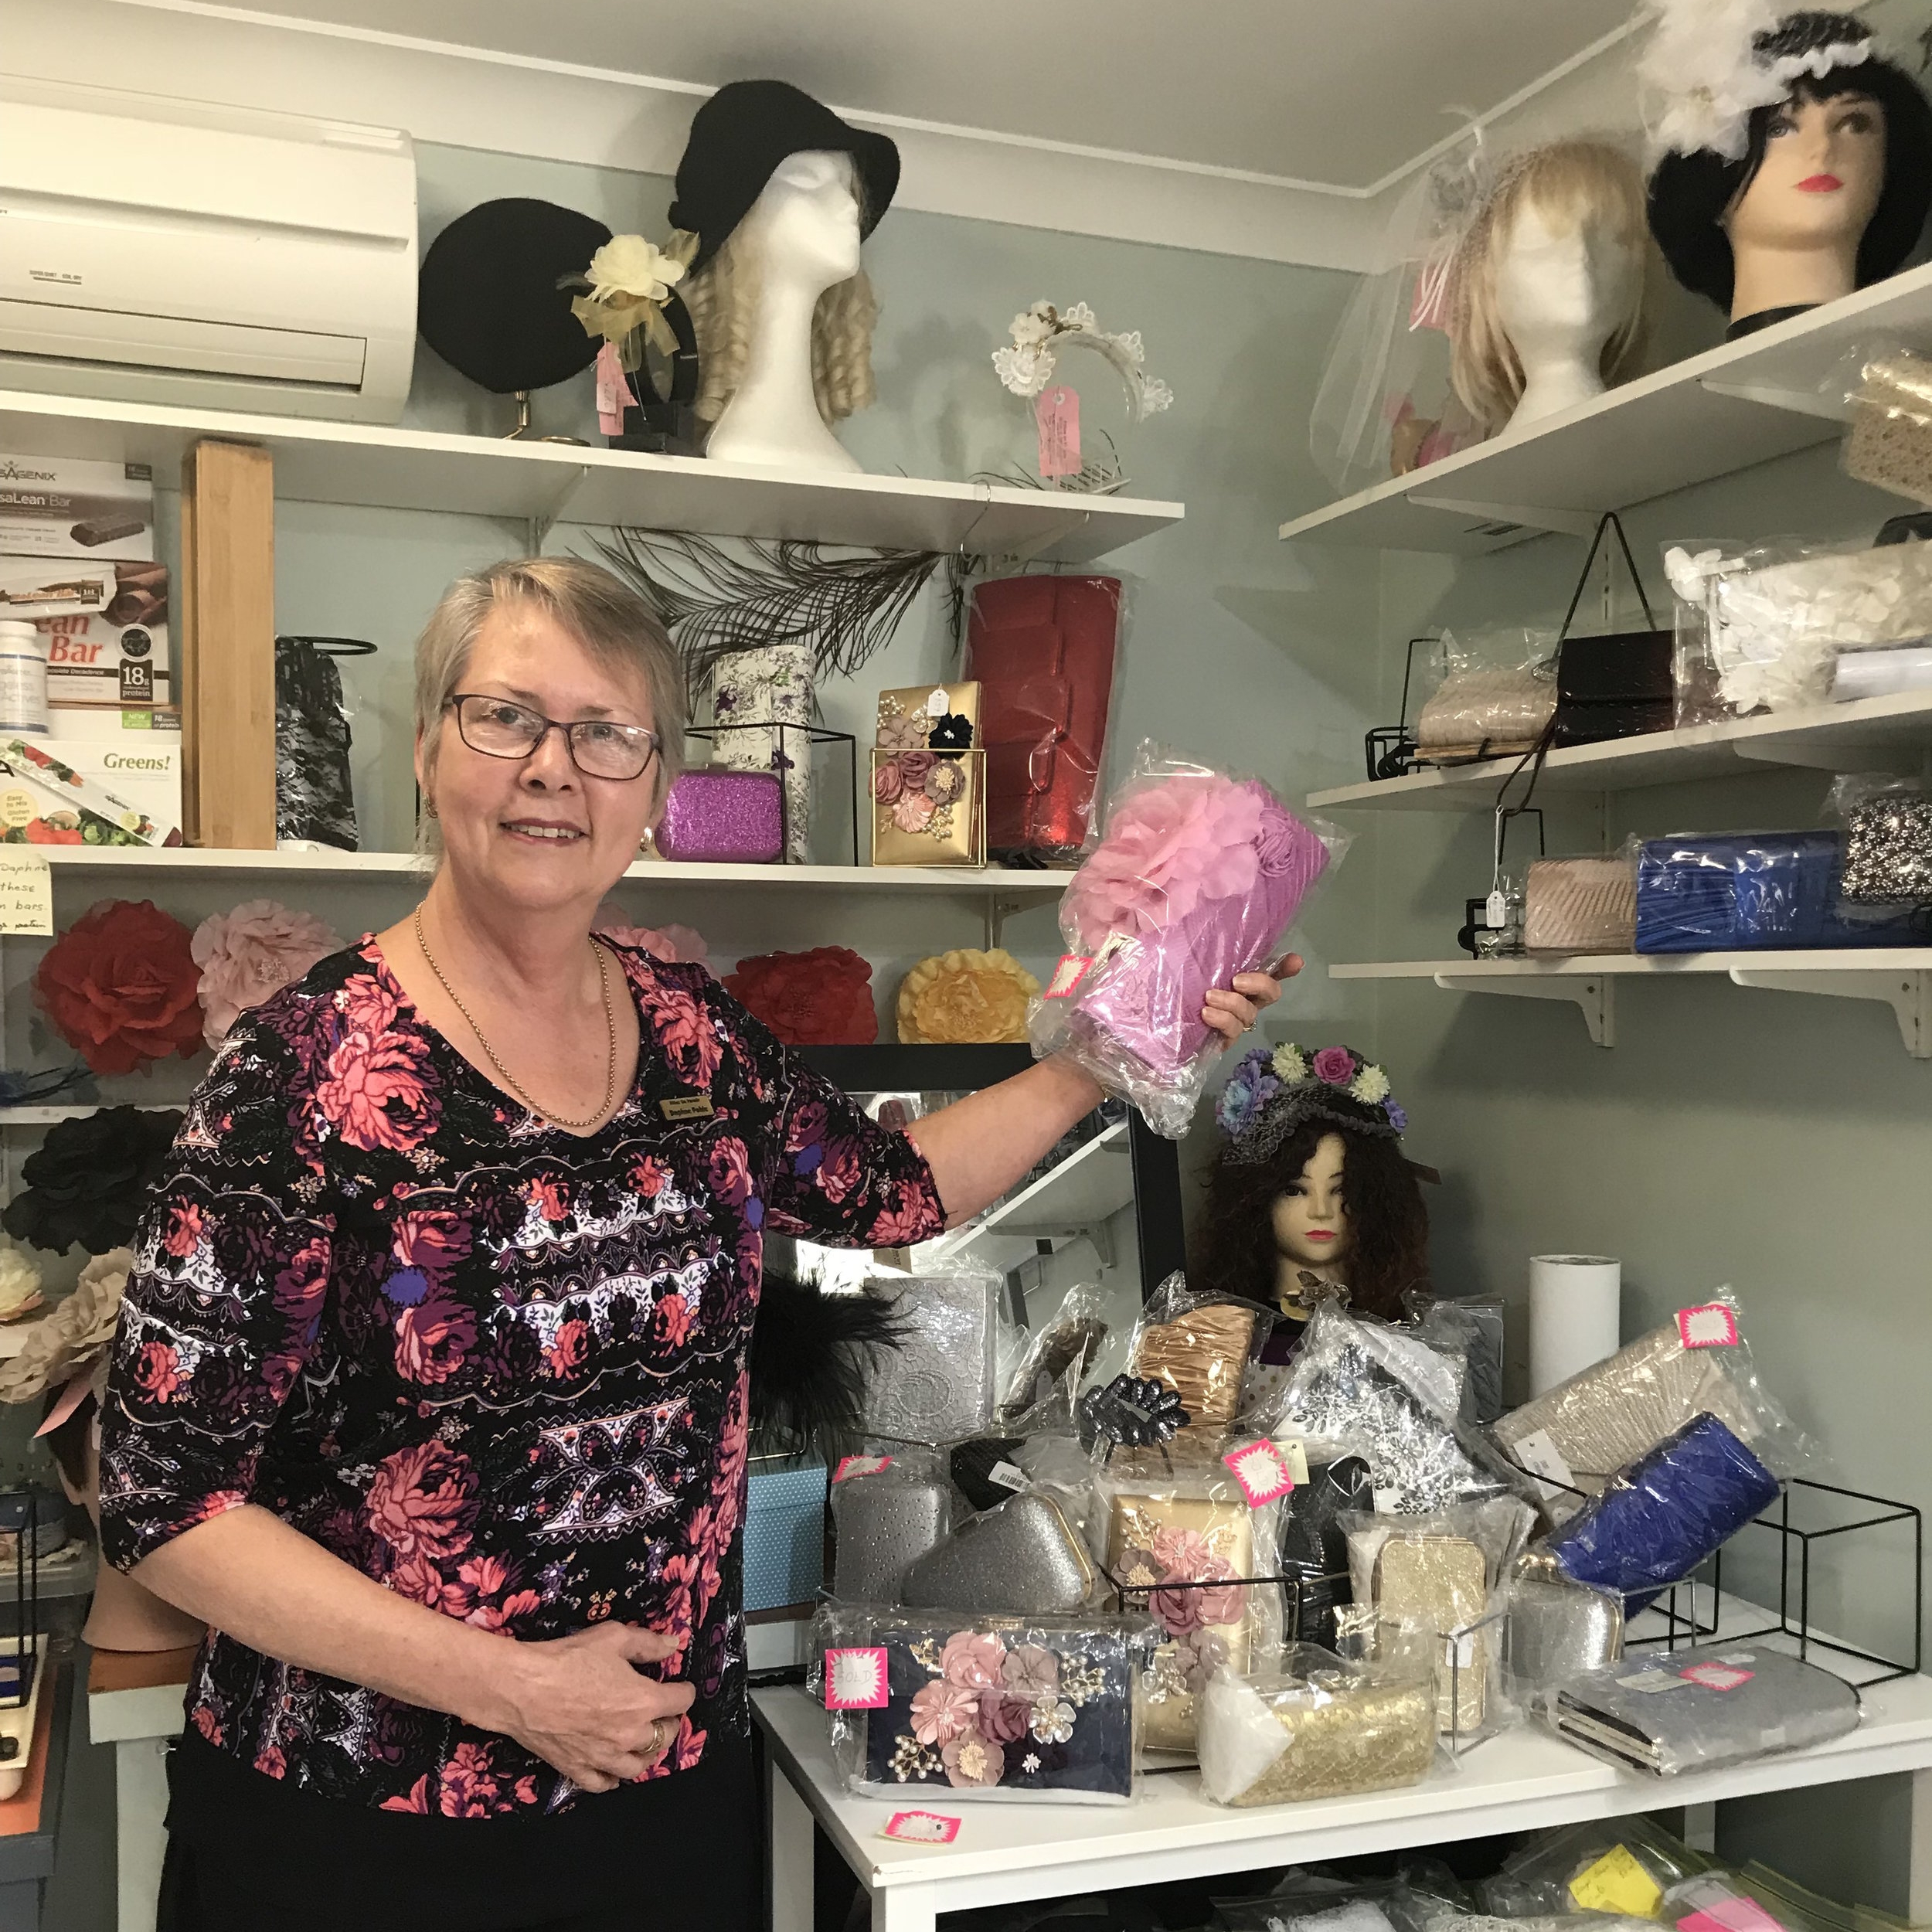 Daphne Pohle with sewing supplies